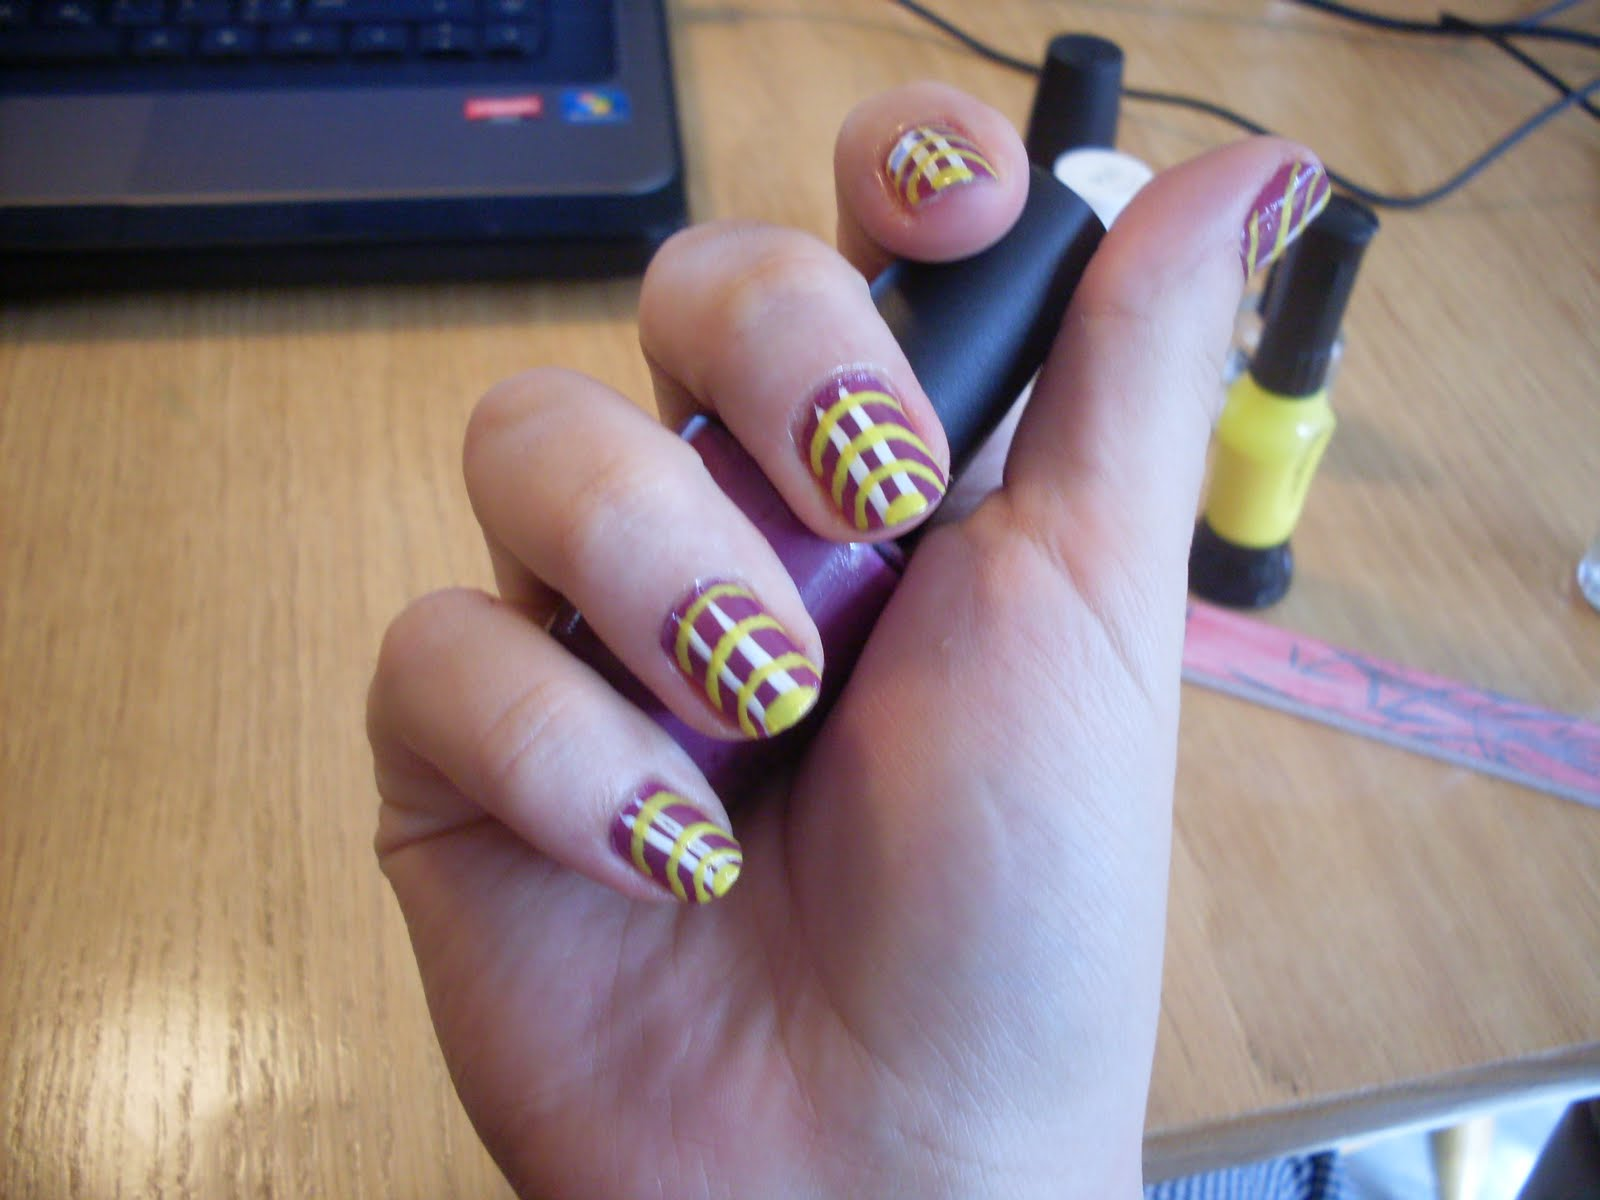 Rivuletsbeautyblog!: Nails of the Day; Concentric Electric & Review ...